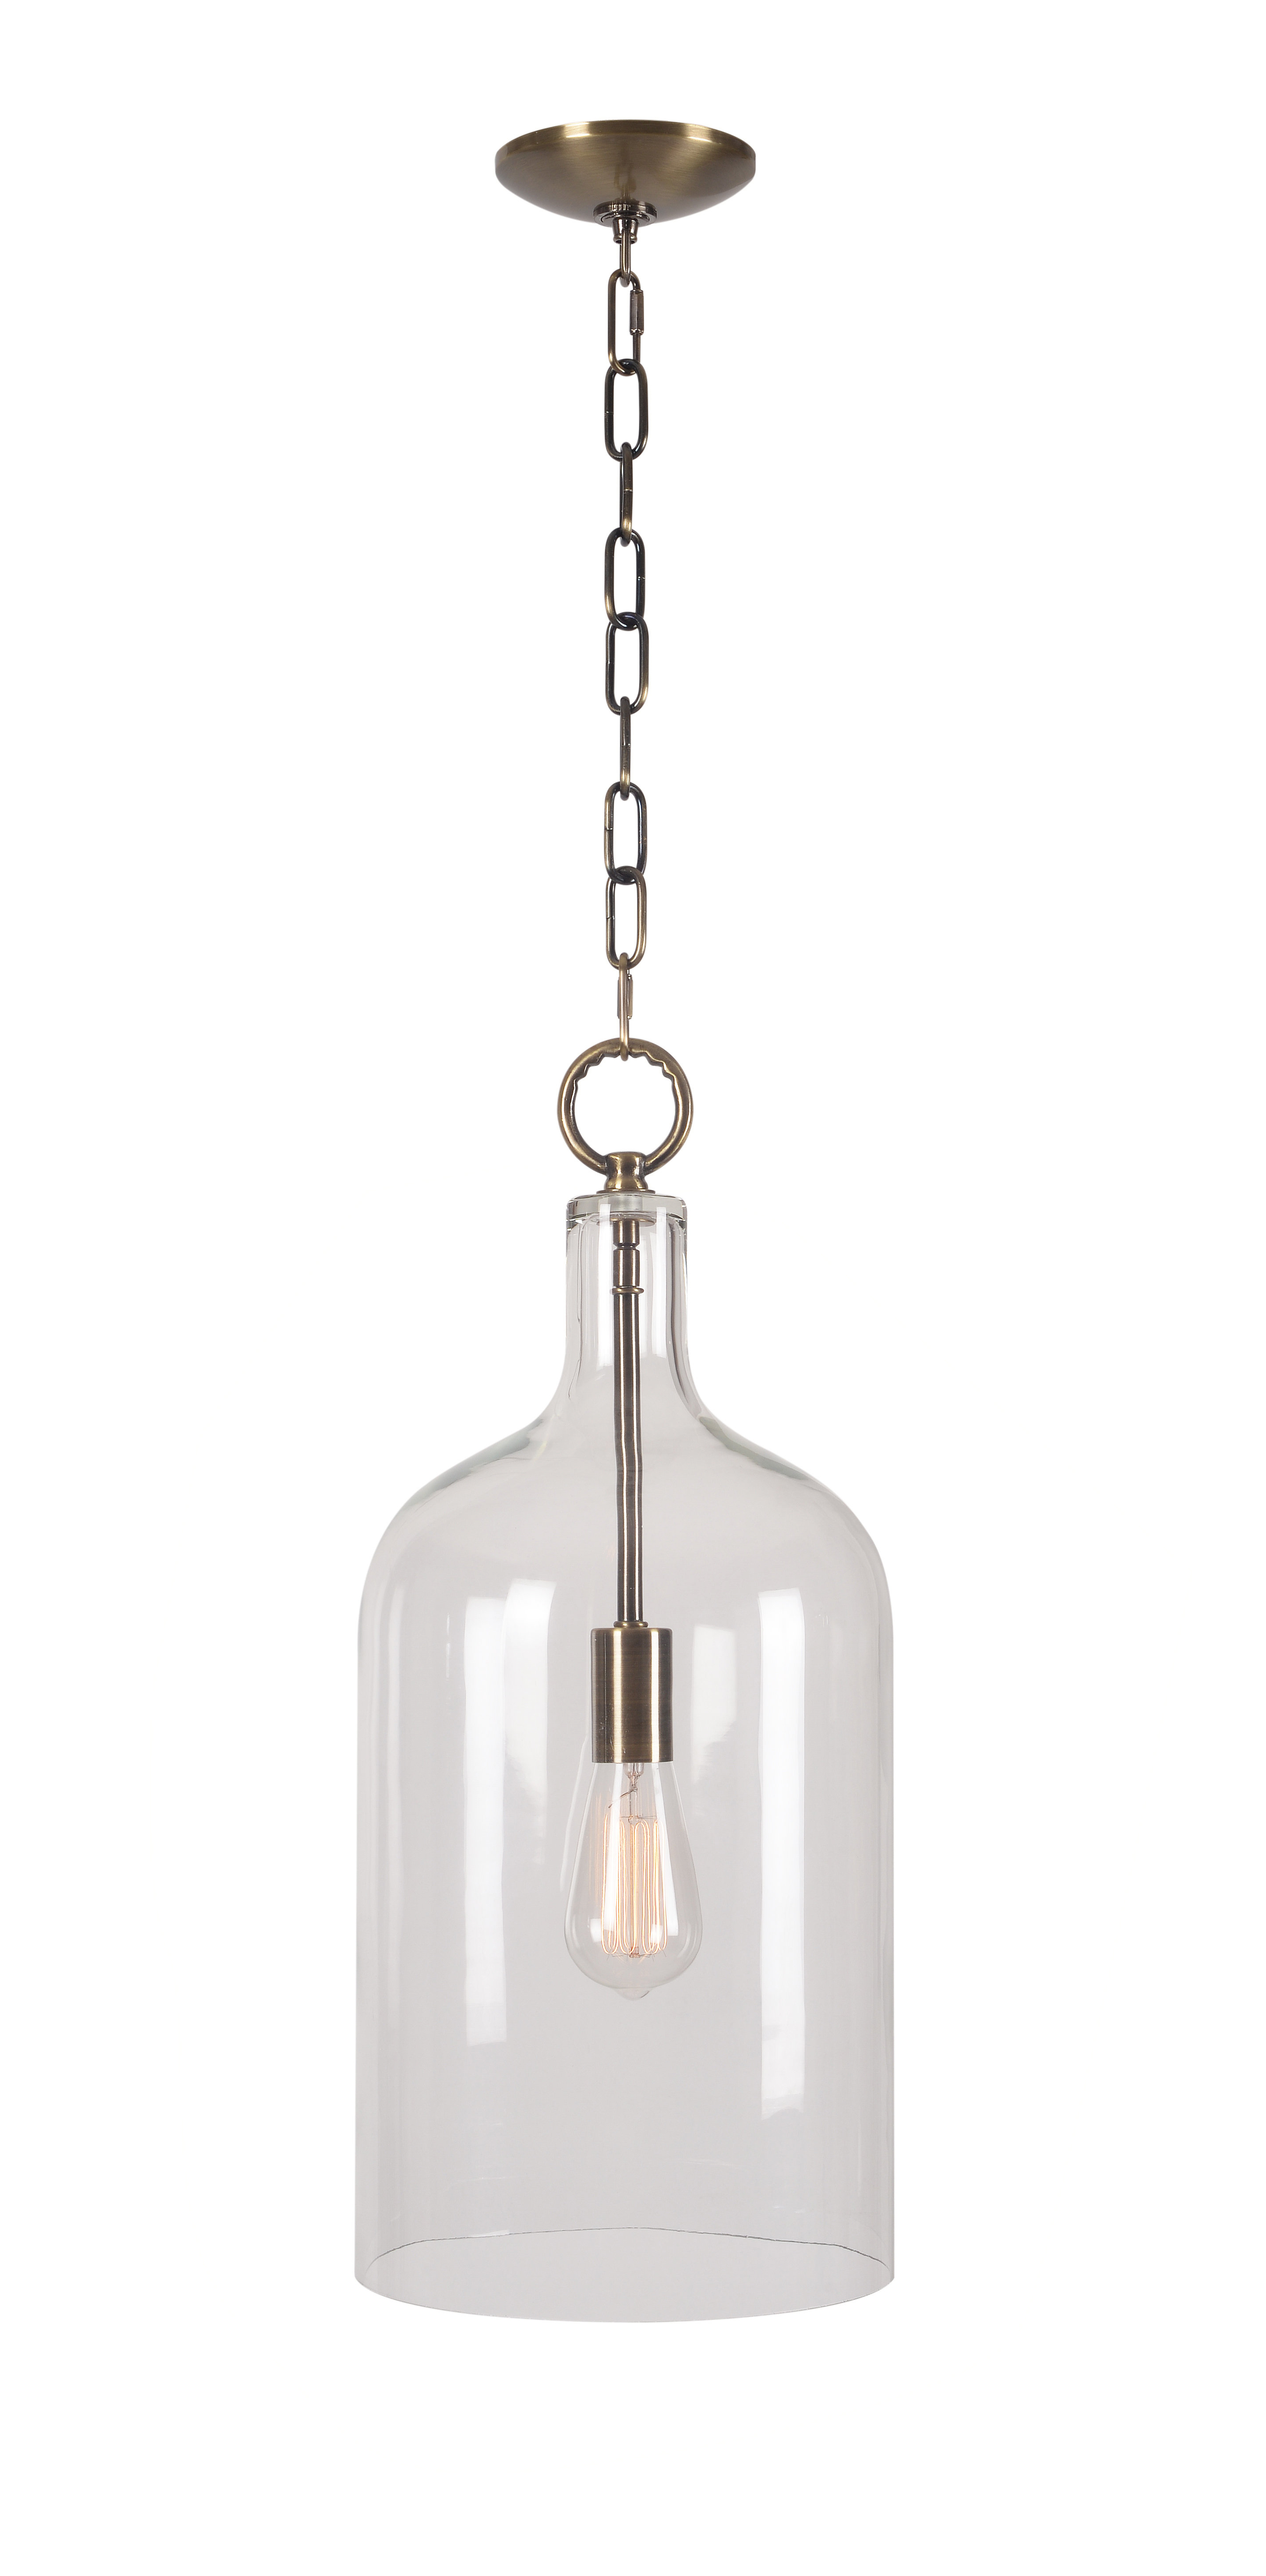 Clematite 1 Light Single Jar Pendant Intended For Well Known Nolan 1 Light Lantern Chandeliers (View 4 of 25)